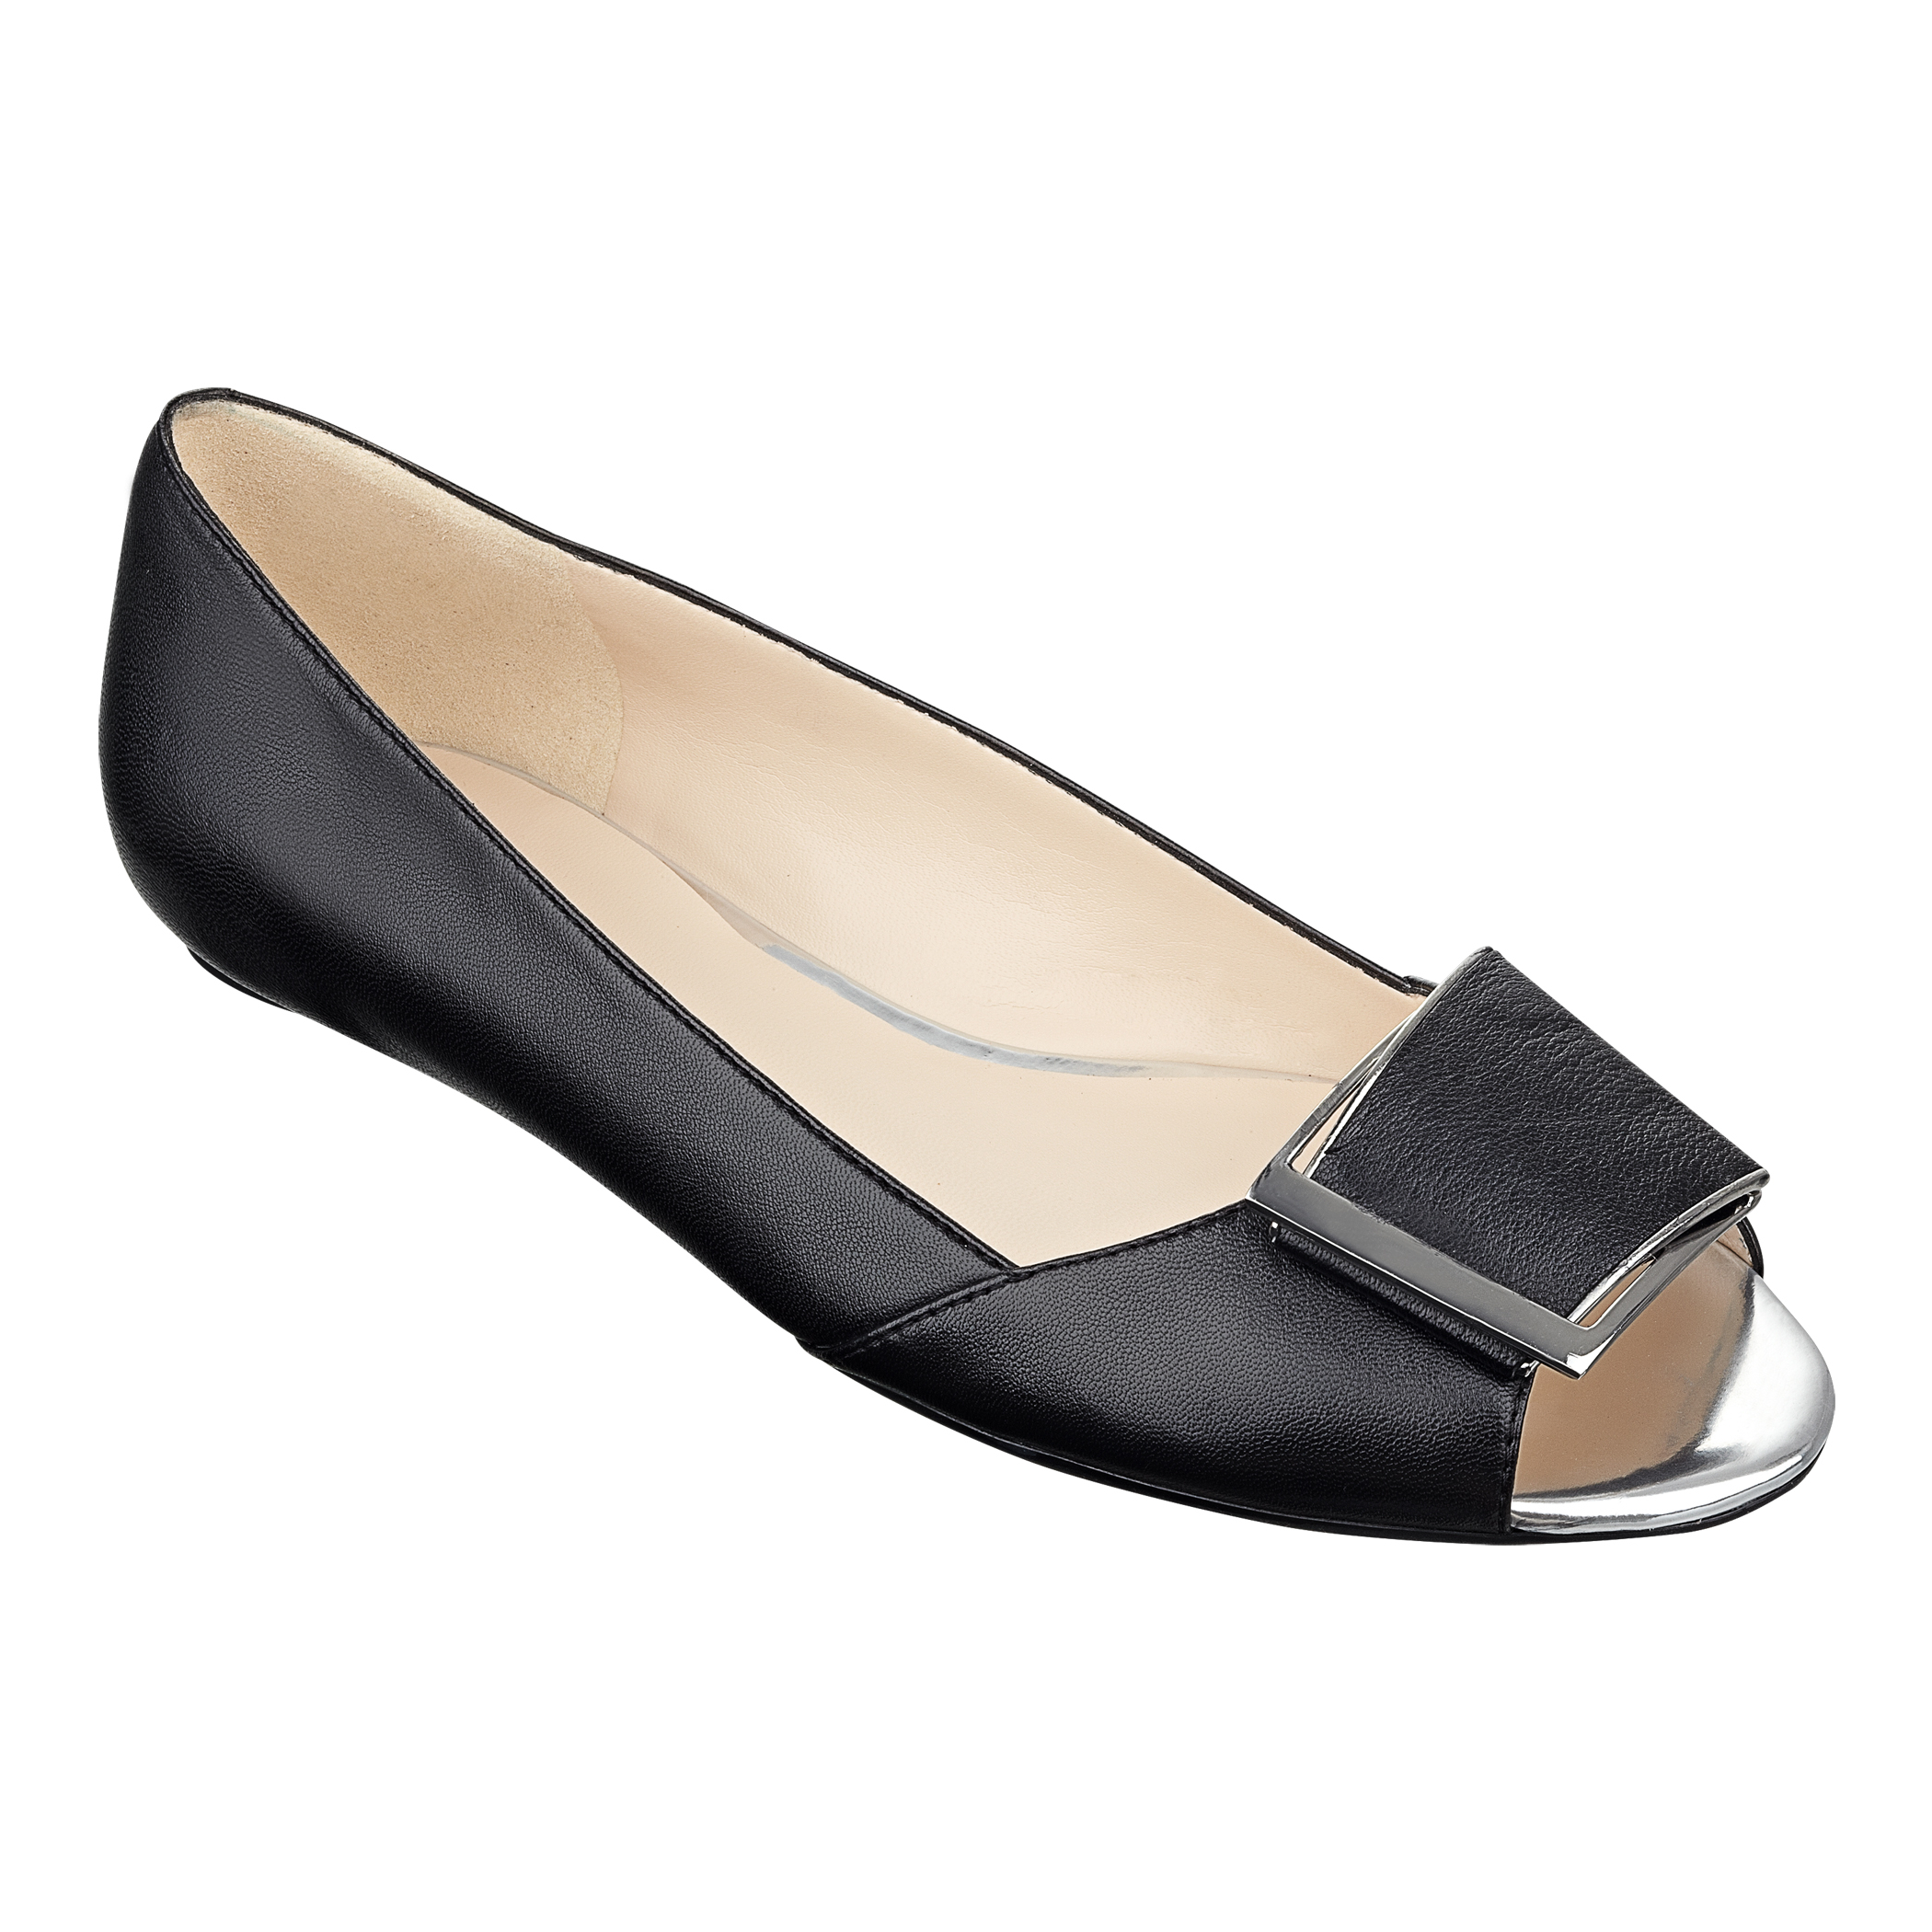 Aldo Black Peep Toe Flat Shoes